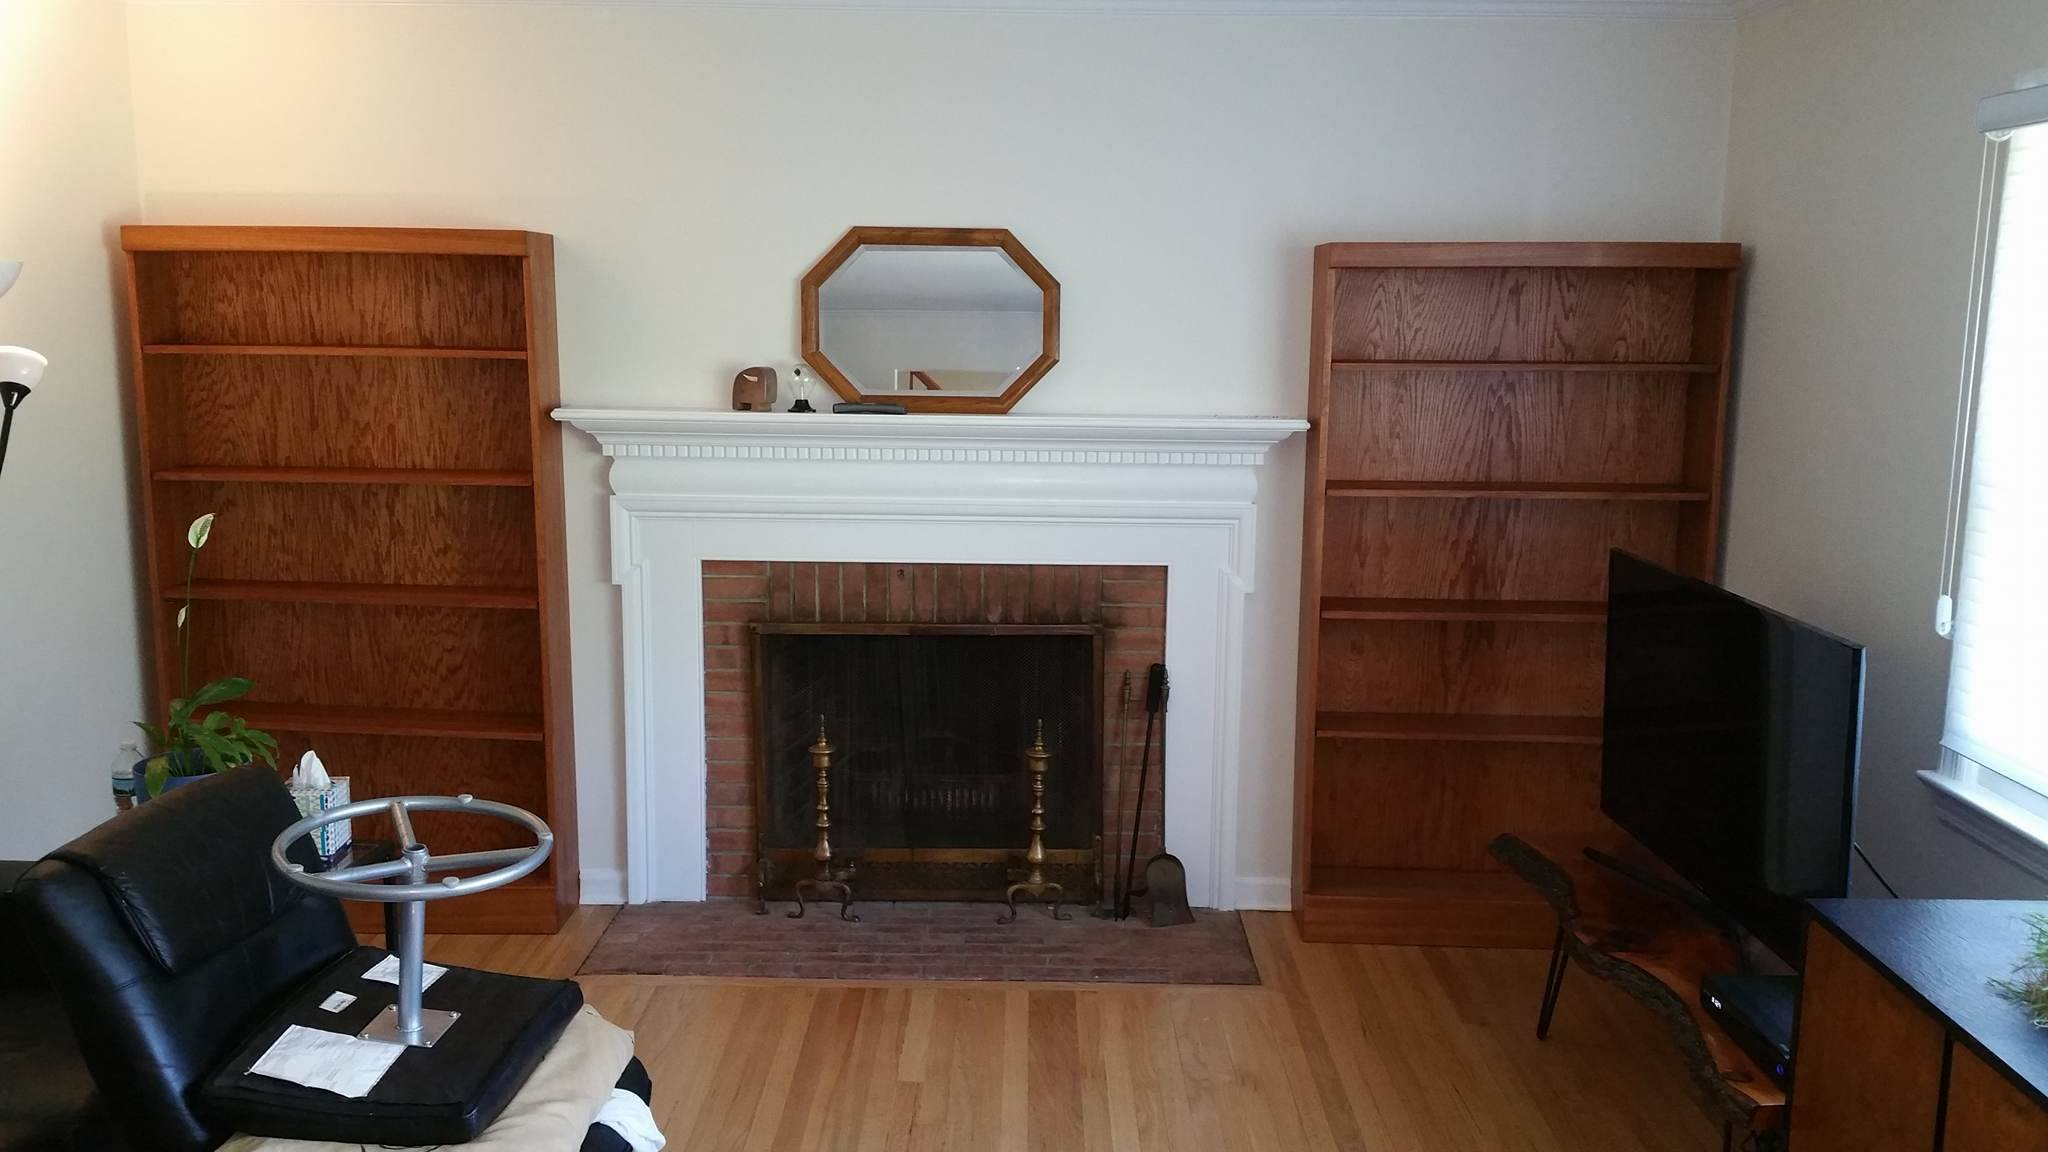 Powell Bookcases